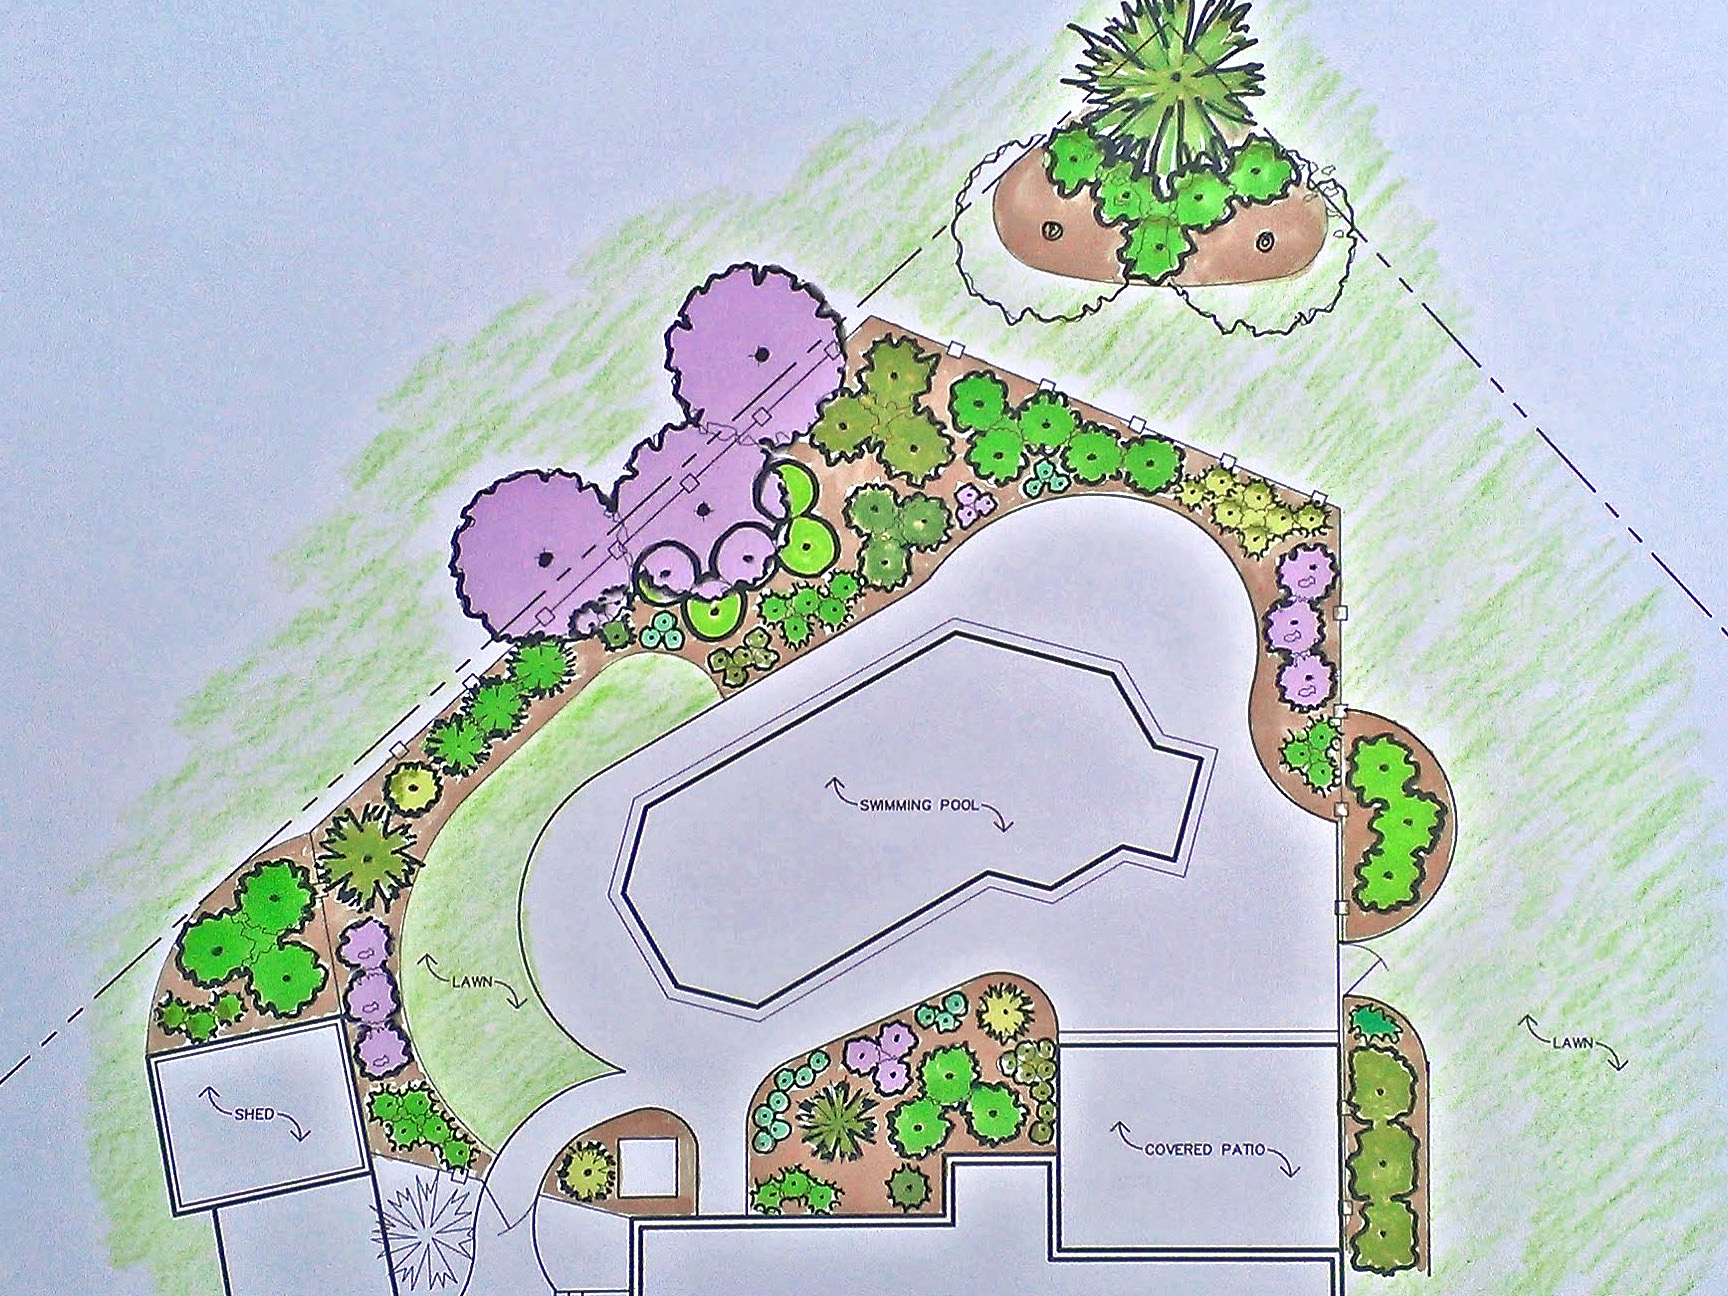 Pool Area Landscaping Plan